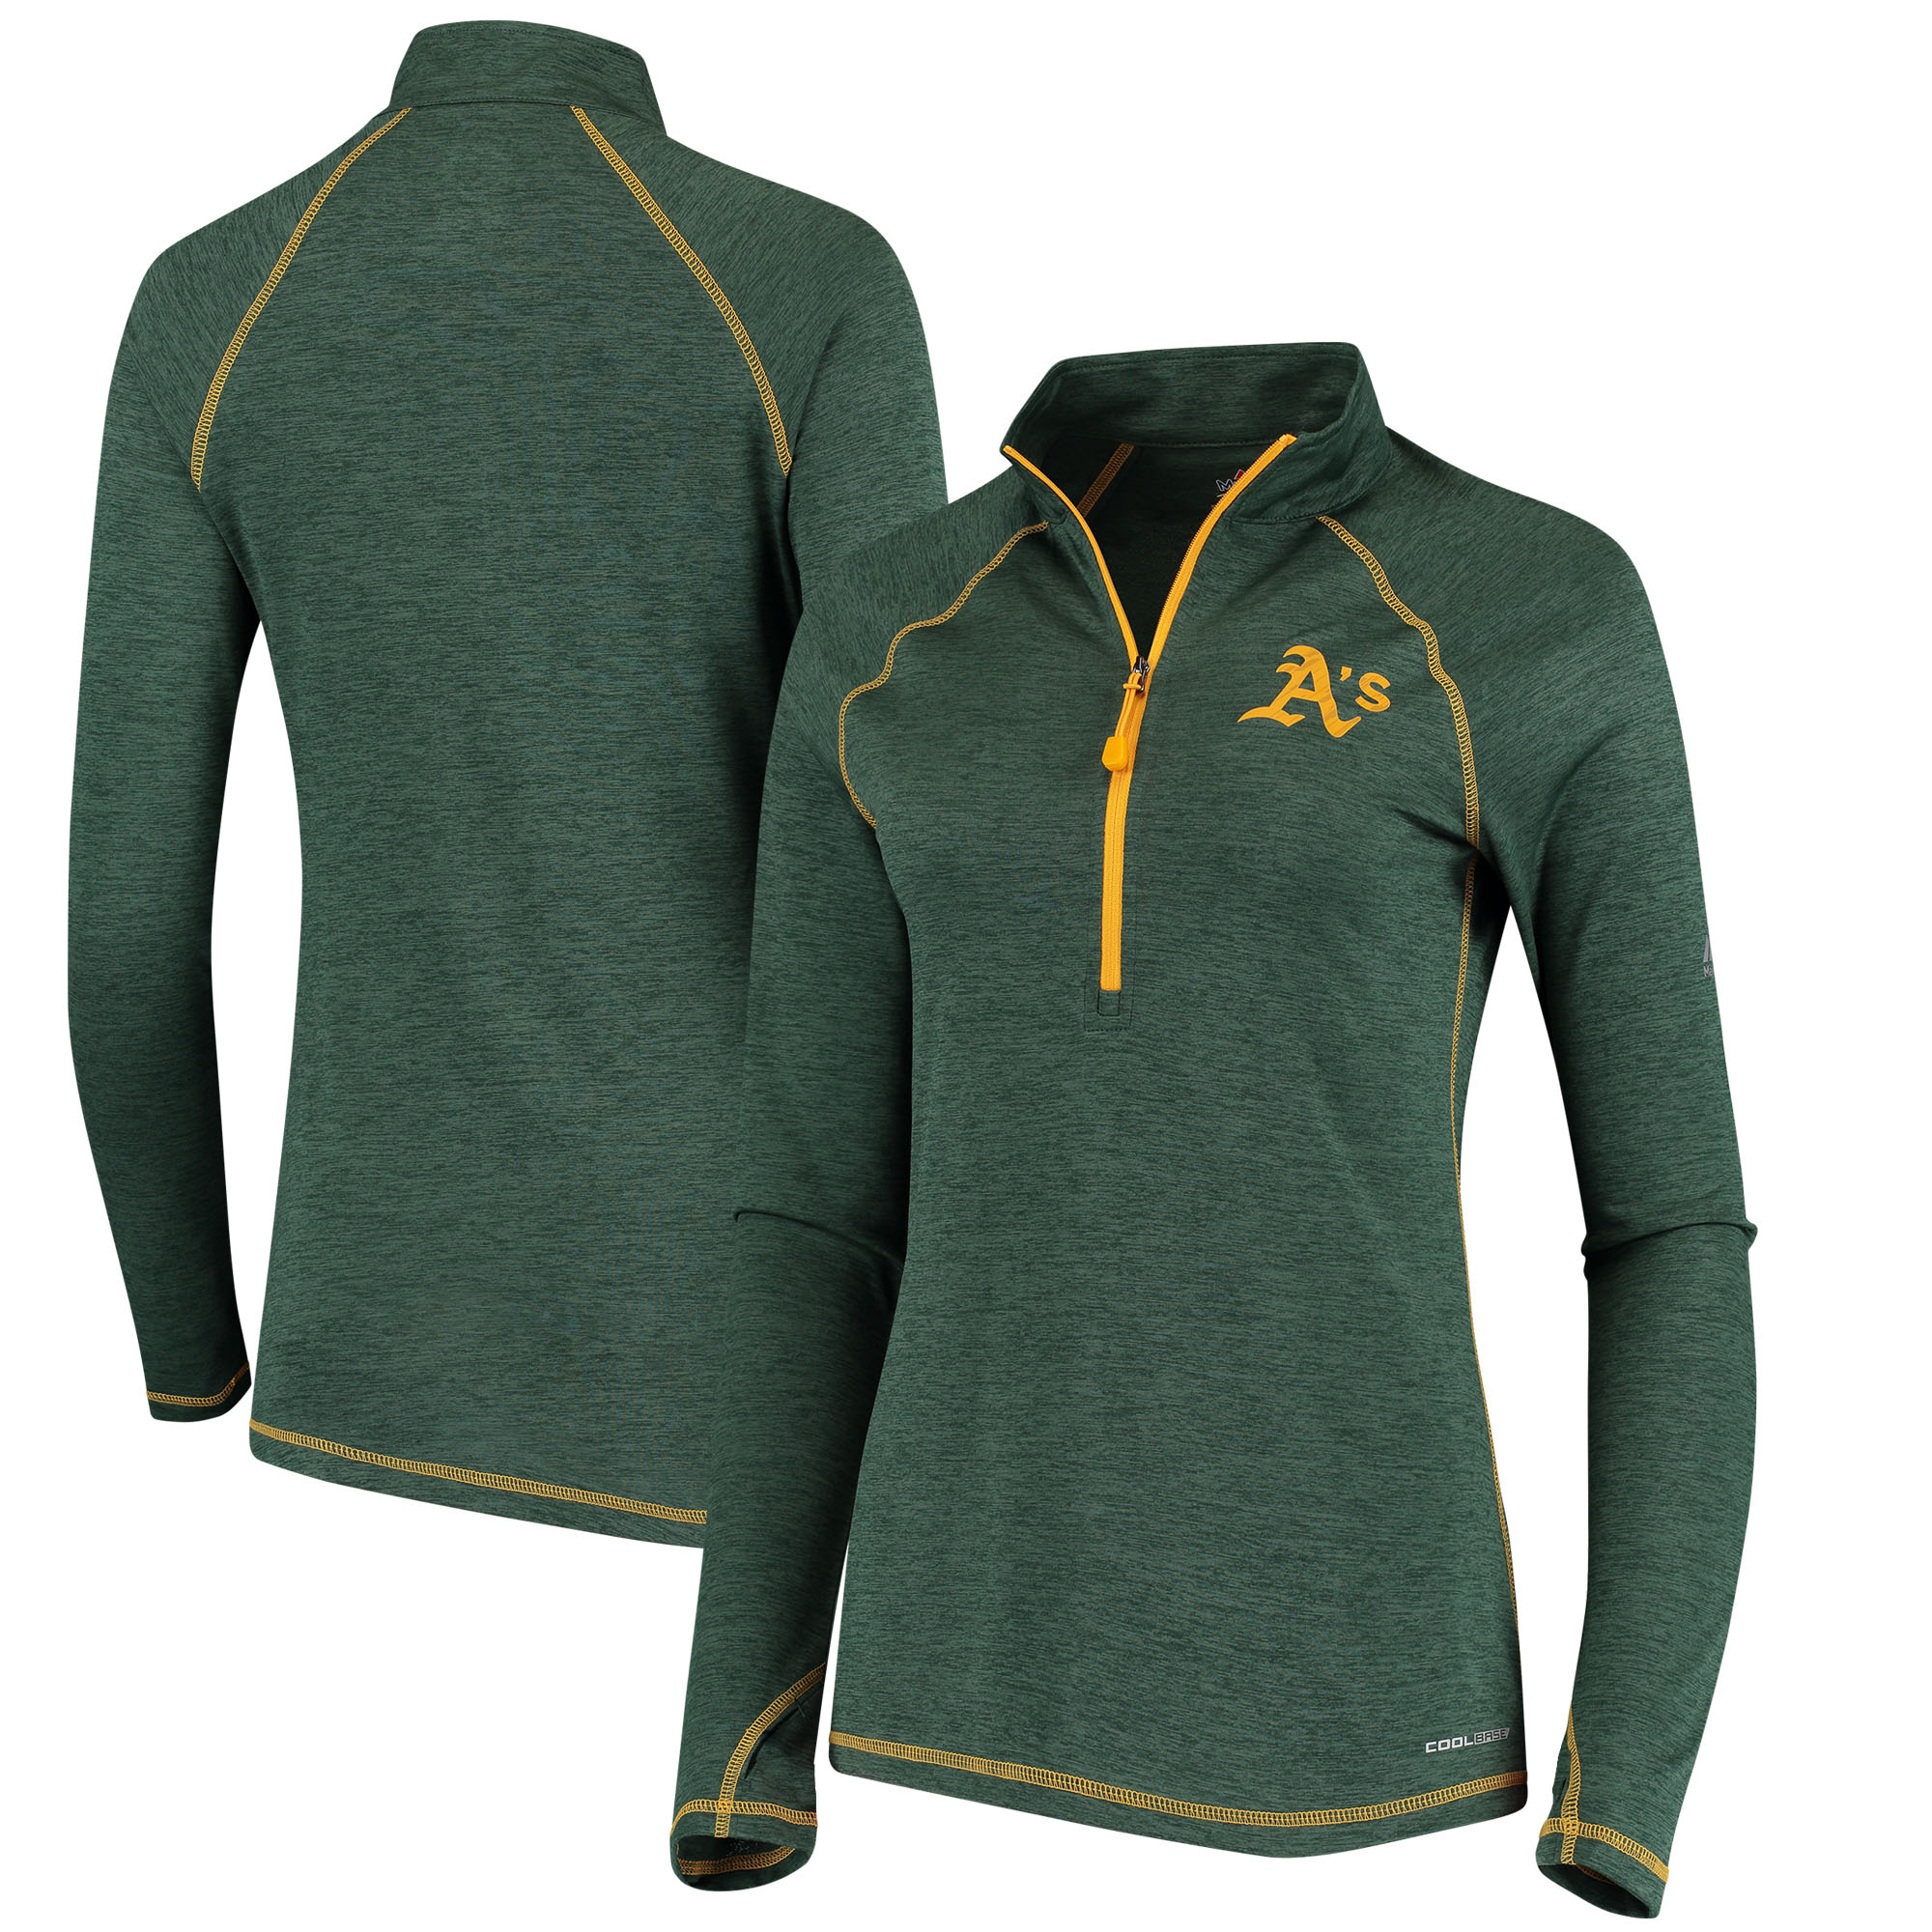 Oakland Athletics Majestic Women's Don't Stop Trying Cool Base Half-Zip Pullover Jacket Green by MAJESTIC LSG